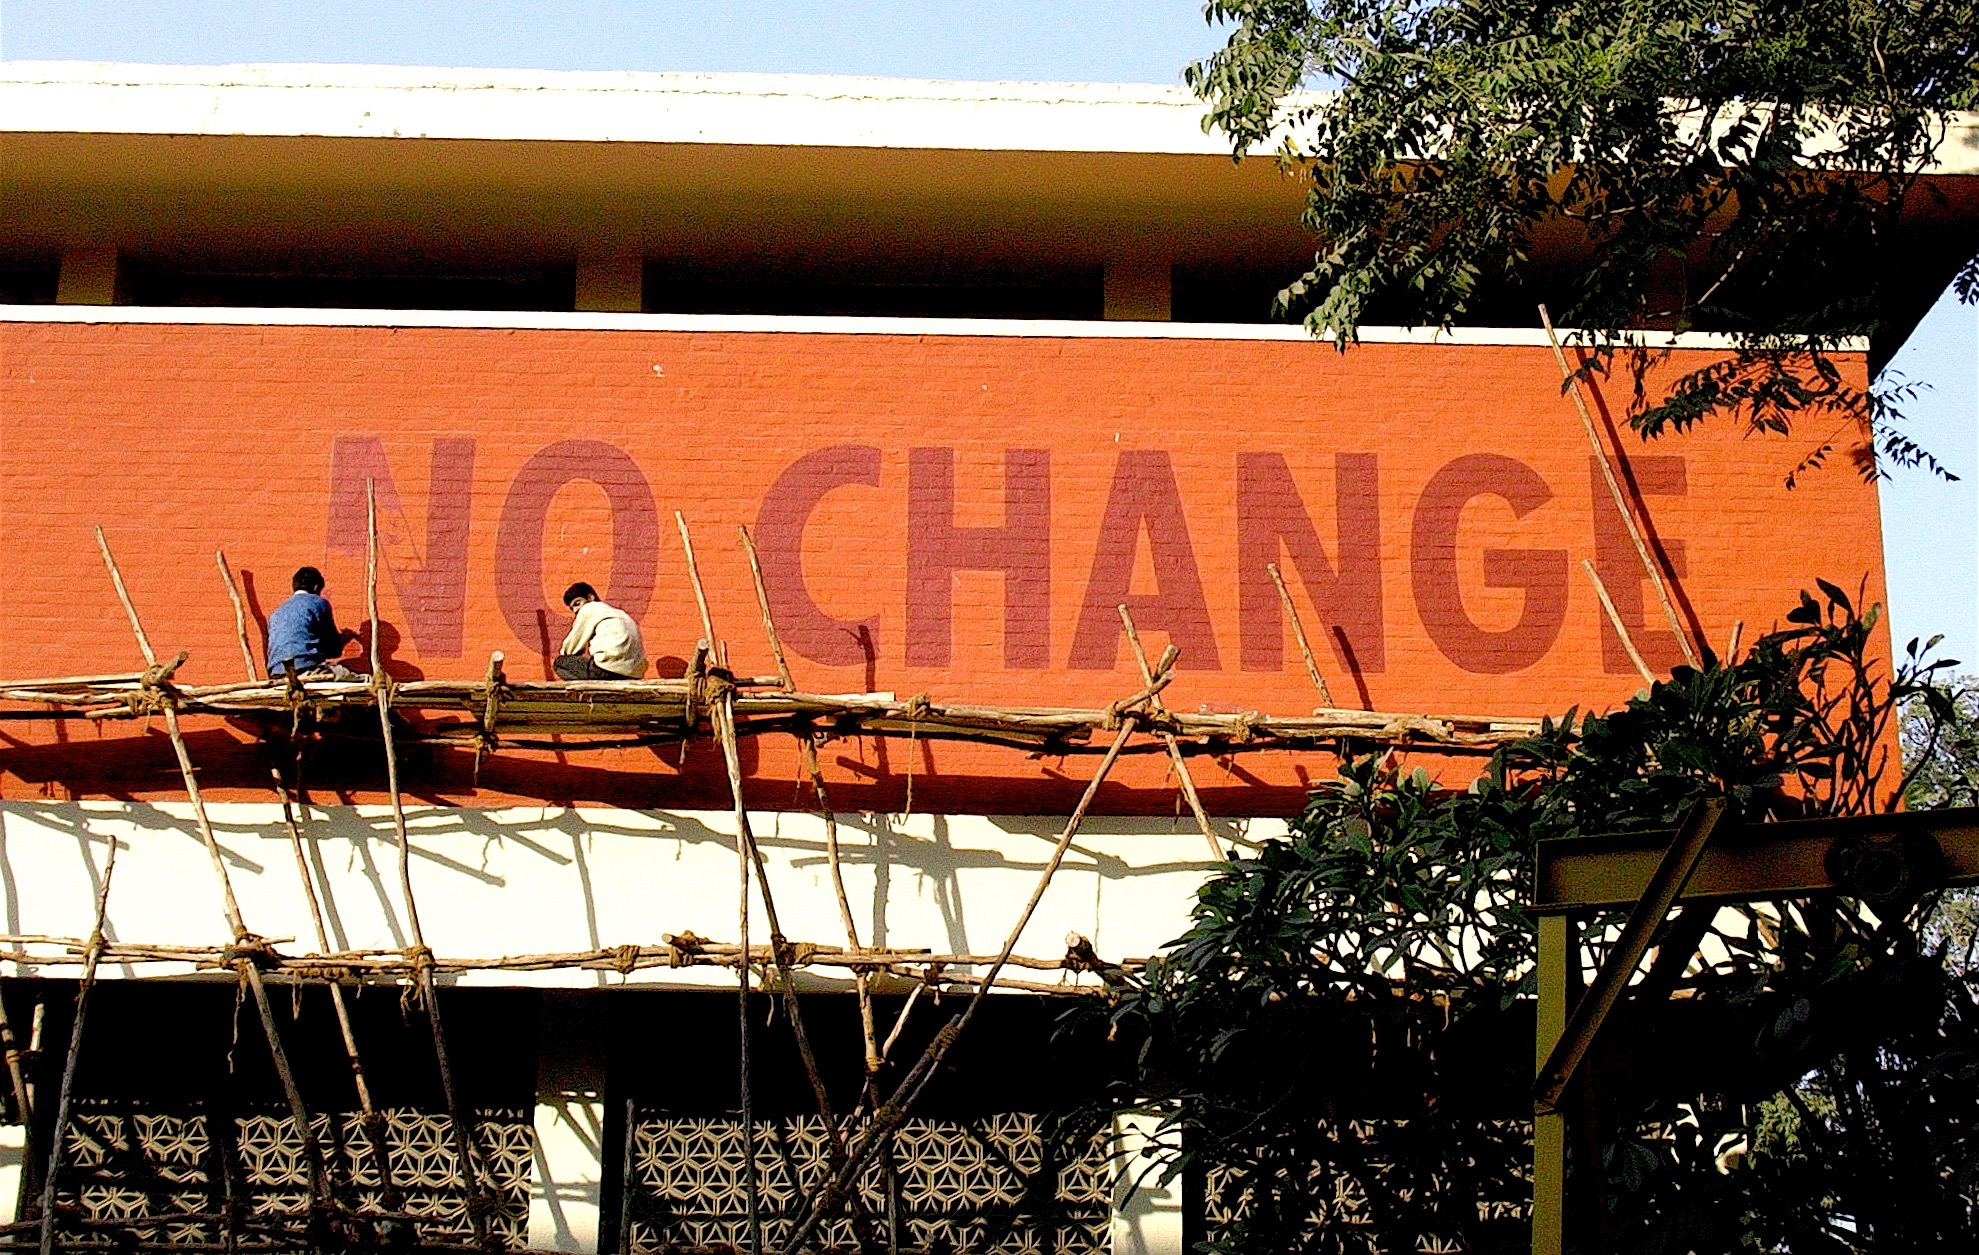 CHANGE – NO CHANGE, 2005, Textinstallation, Triennale India, New Delhi